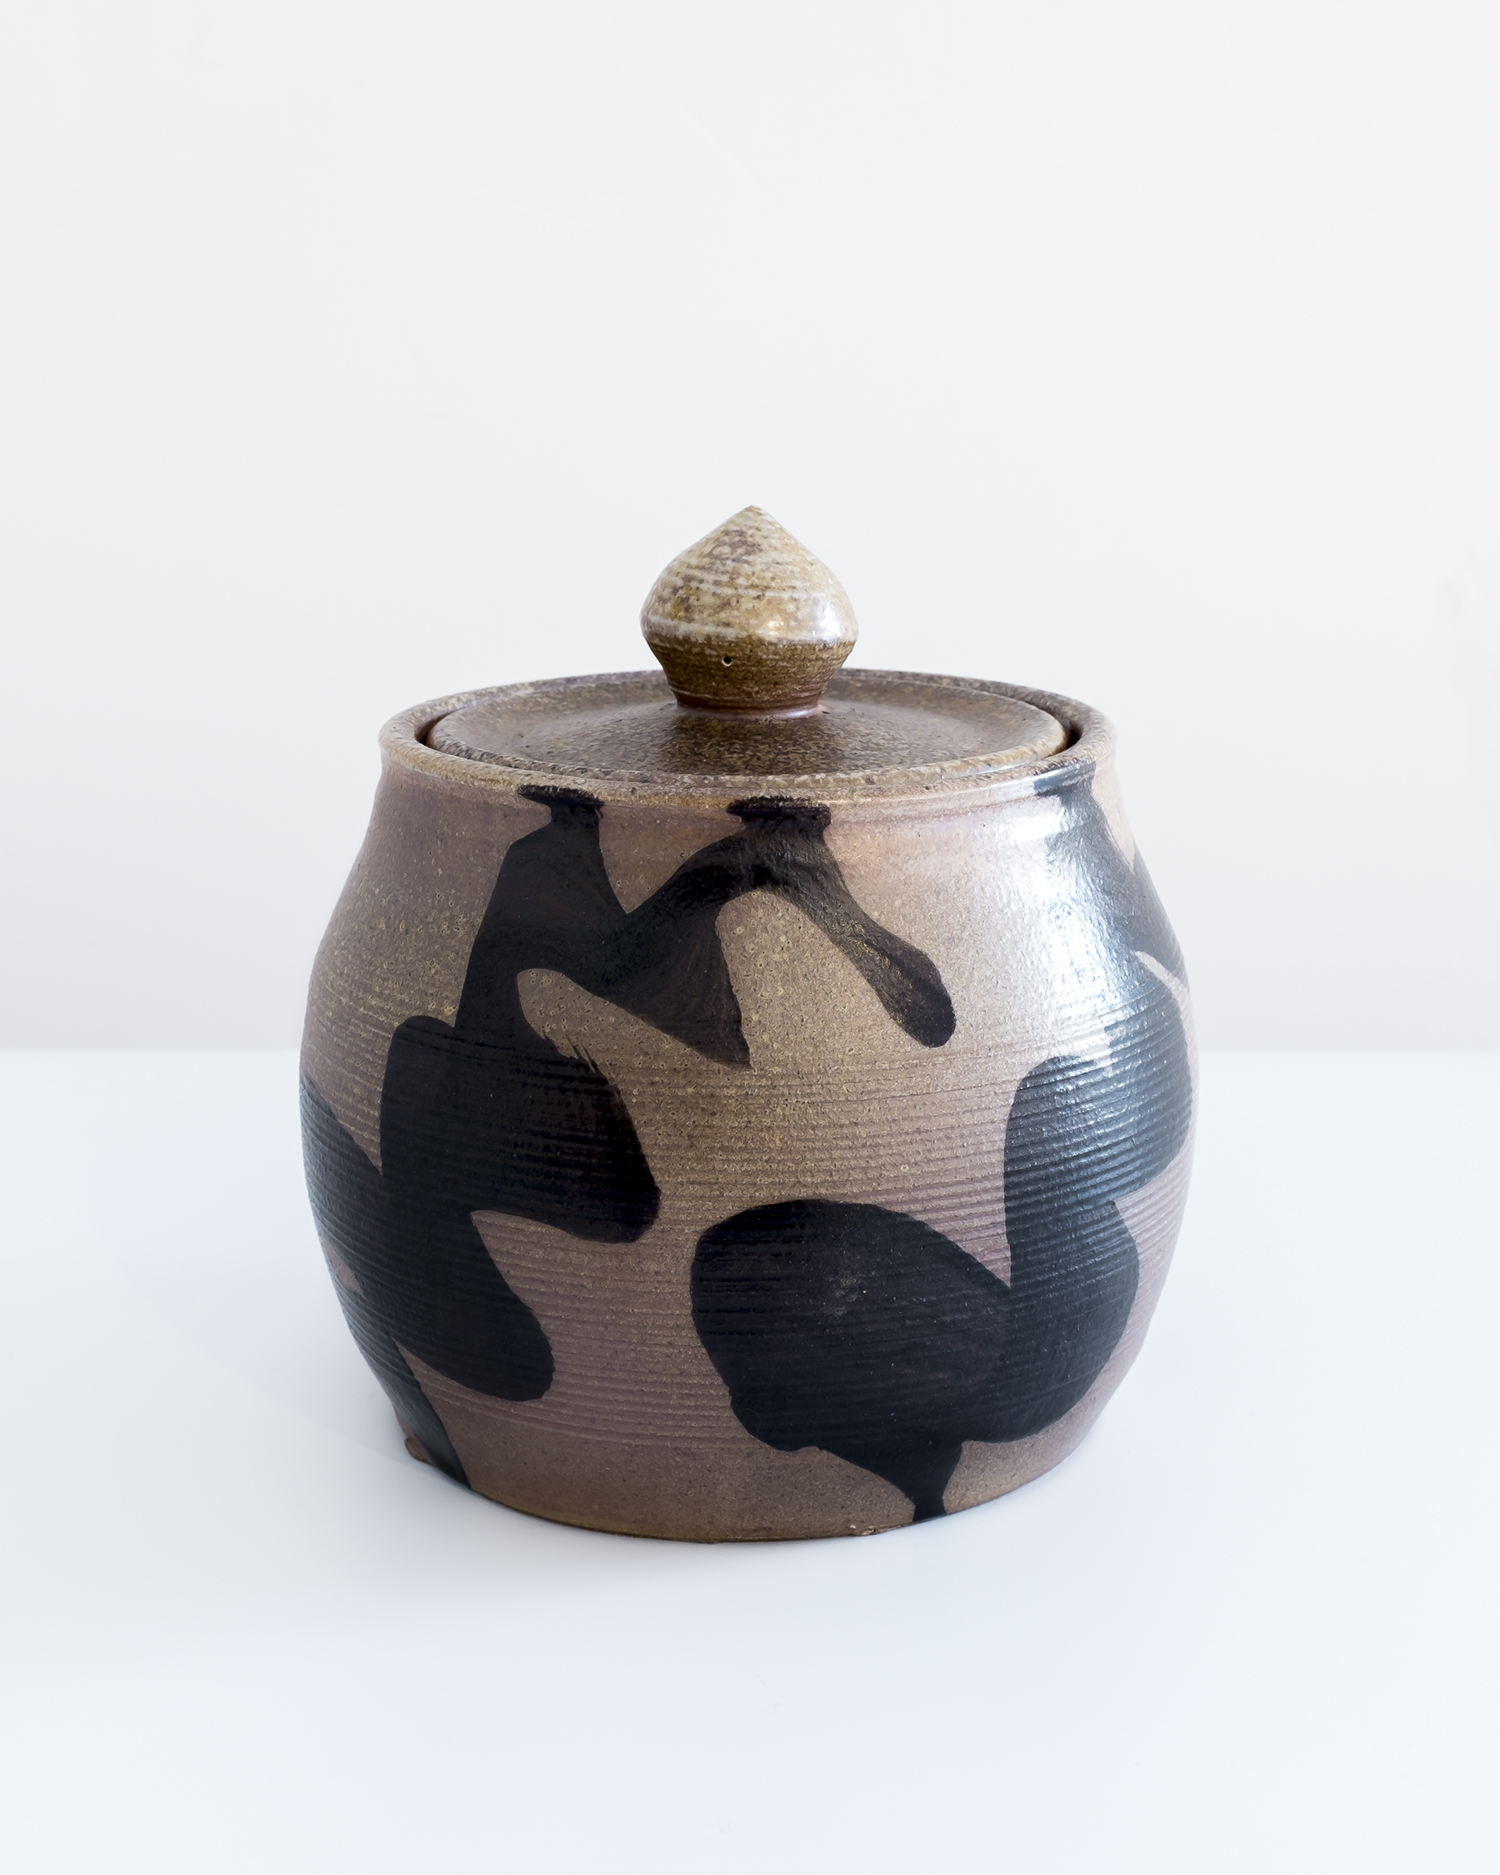 Bradley Walters, Covered Jar